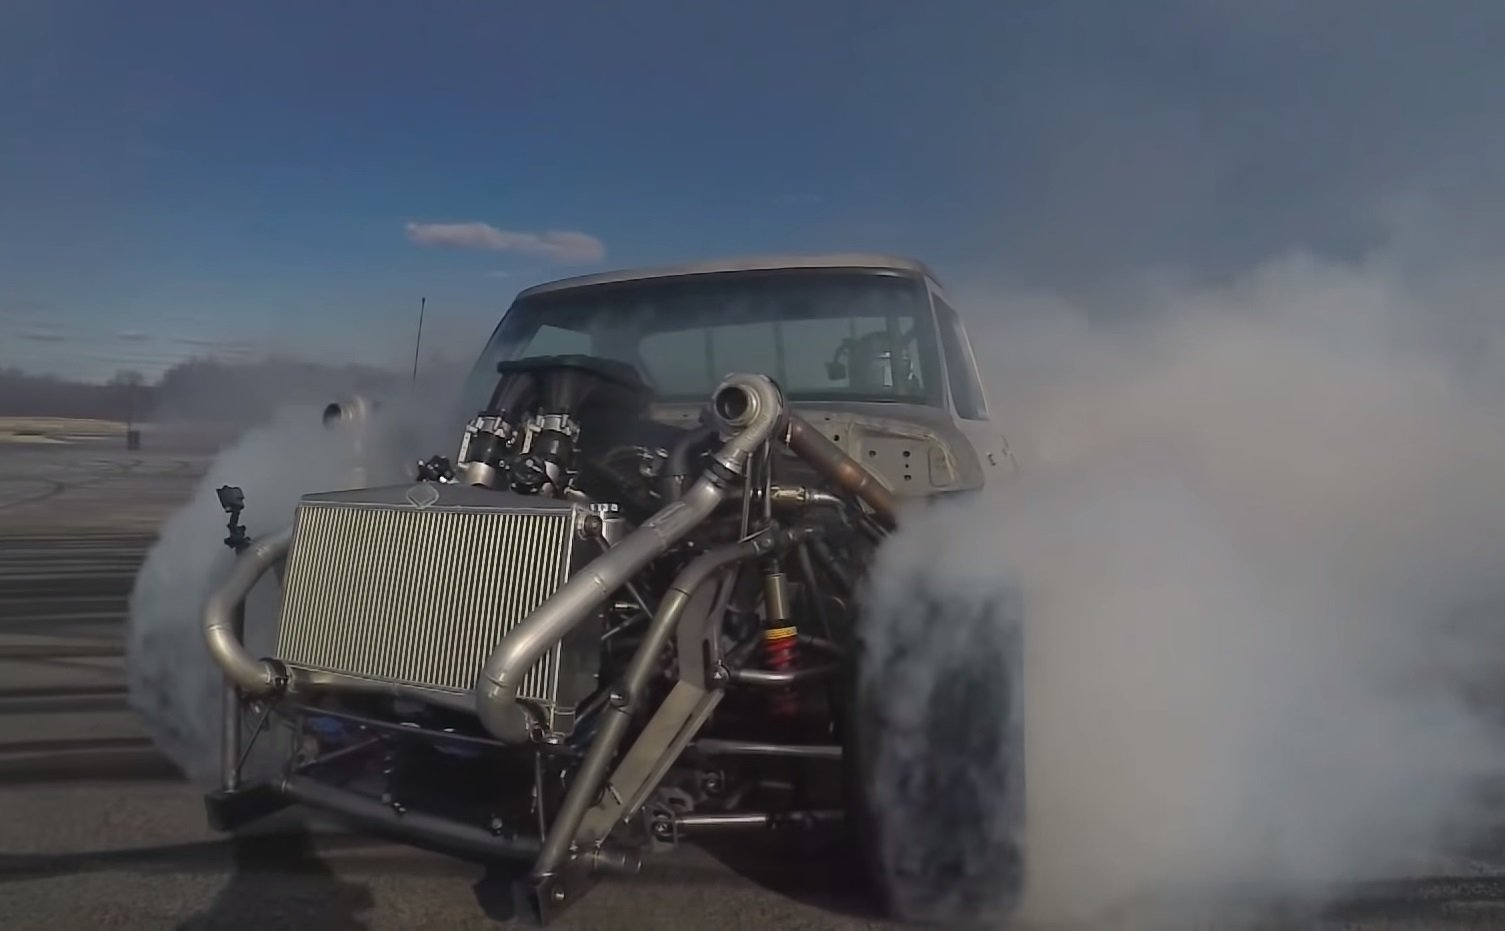 Watch: Ken Block's Hoonitruck Does Big Smoky AWD Burnouts